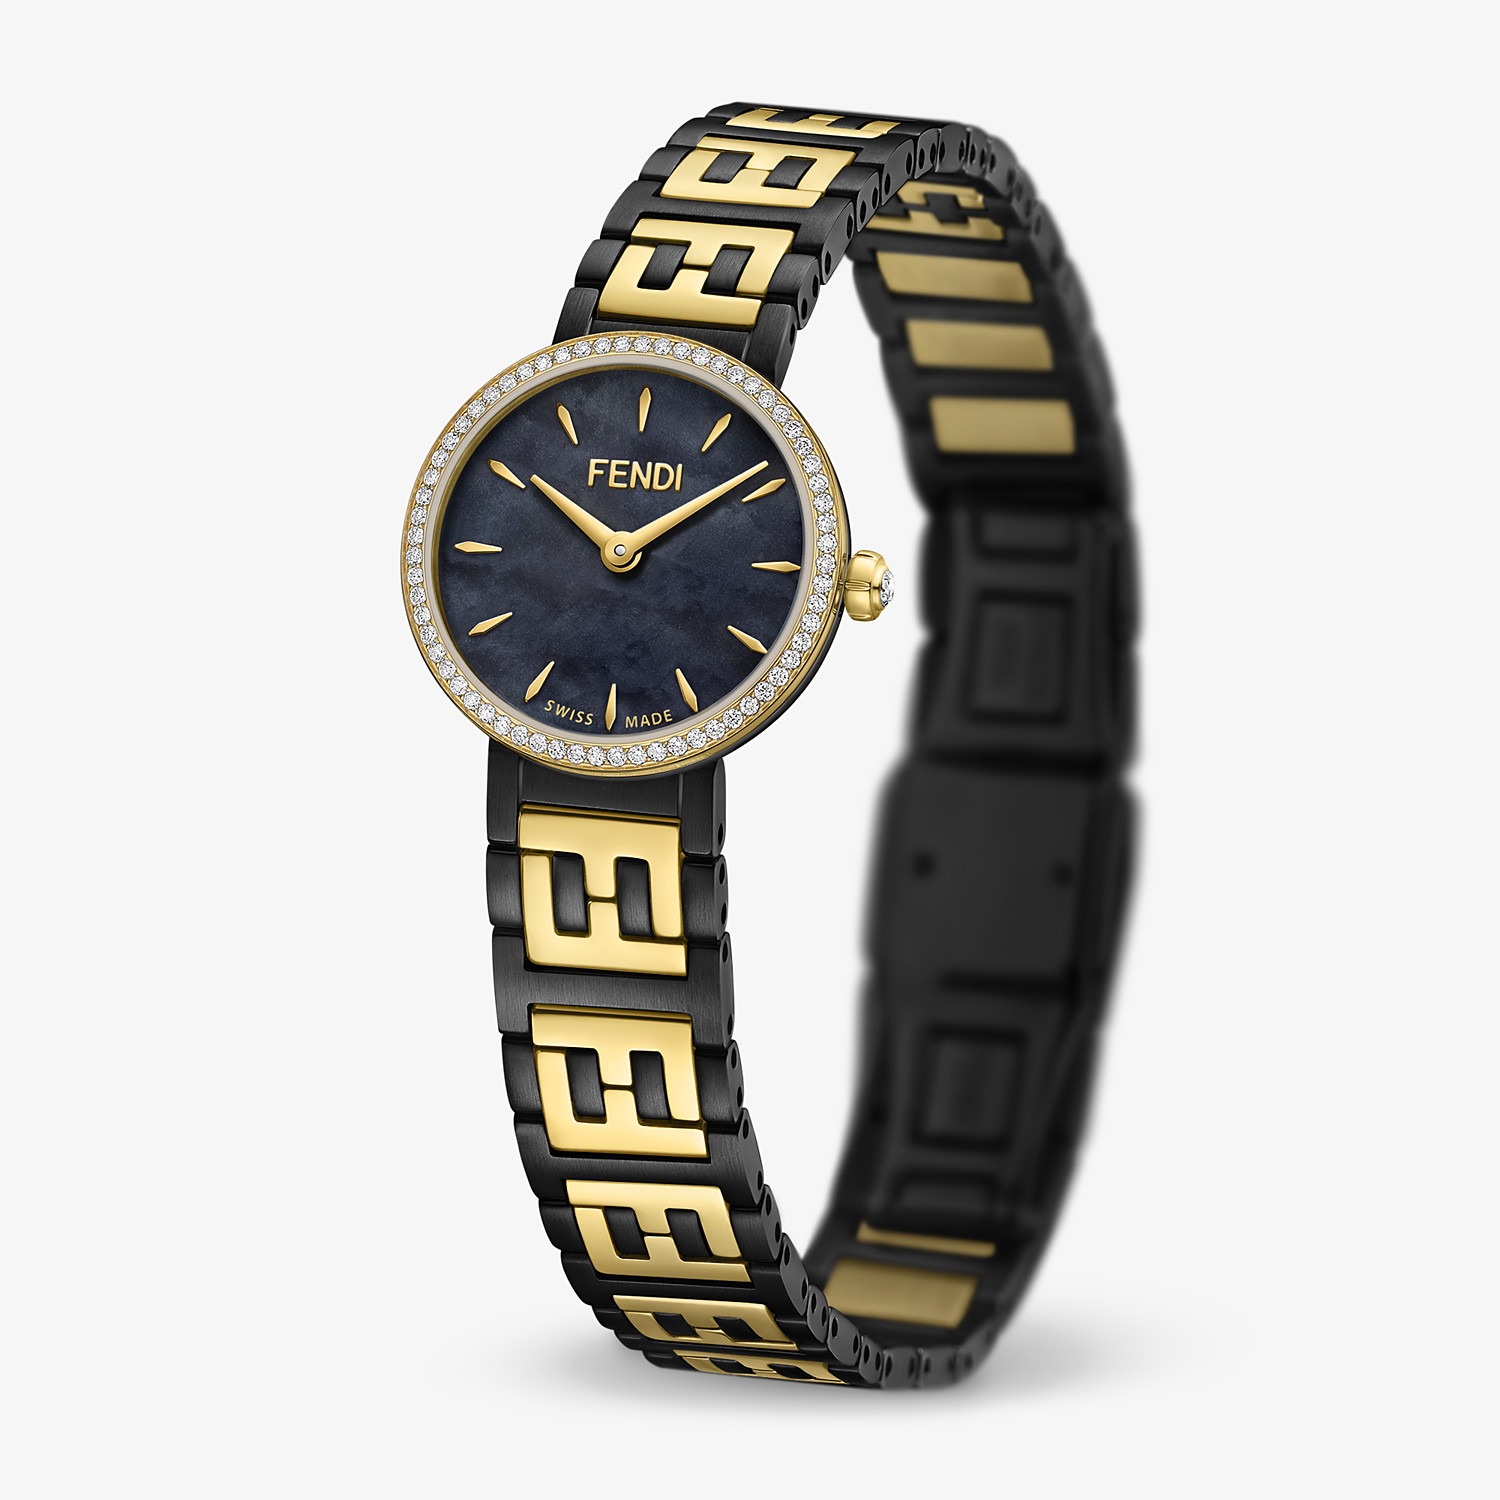 FENDI FOREVER FENDI - 19 MM - Watch with FF logo bracelet - view 2 detail